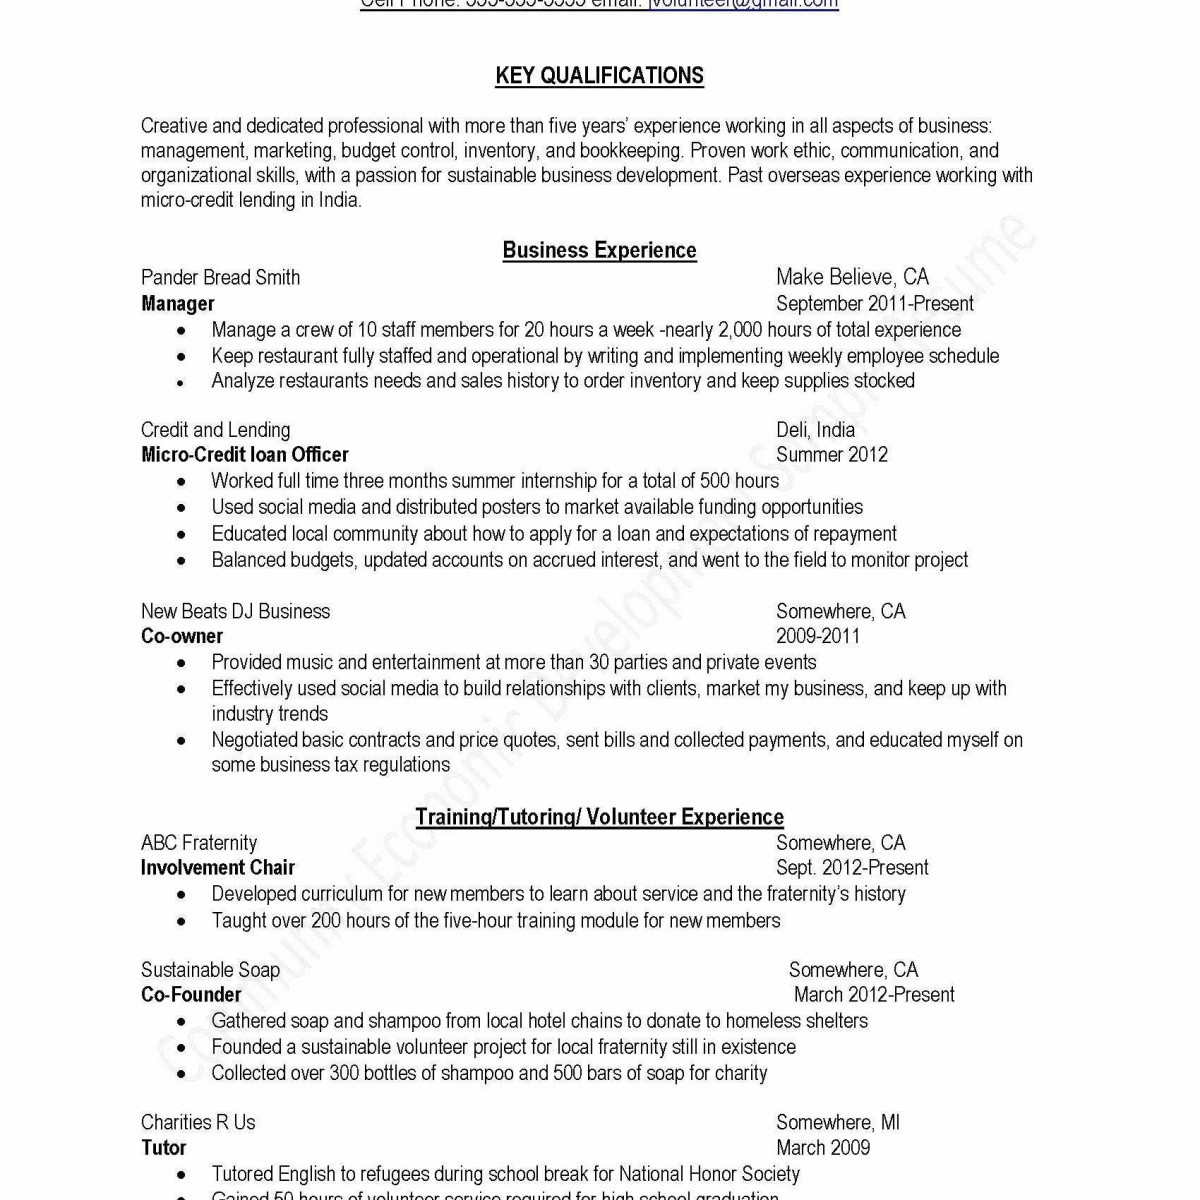 resume building words example-Resume Building Words Amazing Resume Key Words New Elegant Resume Tutor Unique Painter Resume 0d 11-a